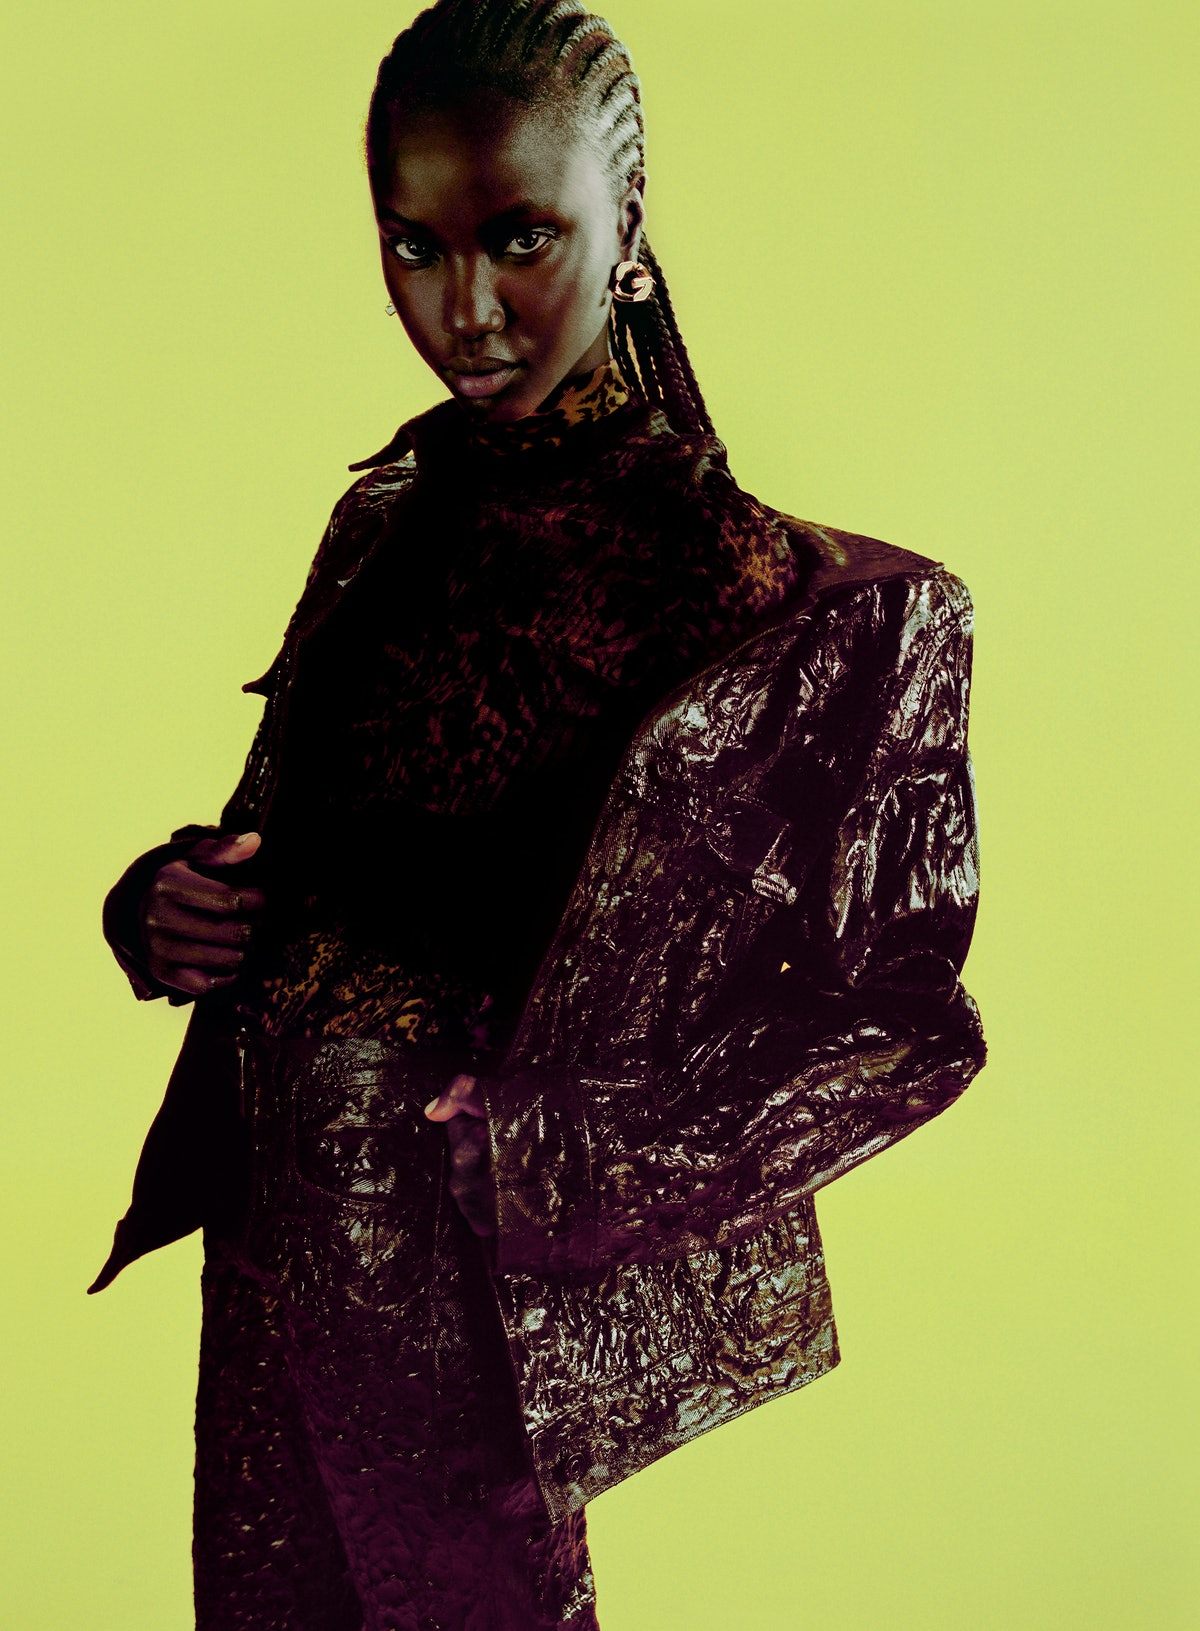 Anok Yai models in Givenchy Spring/Summer 2021 campaign.